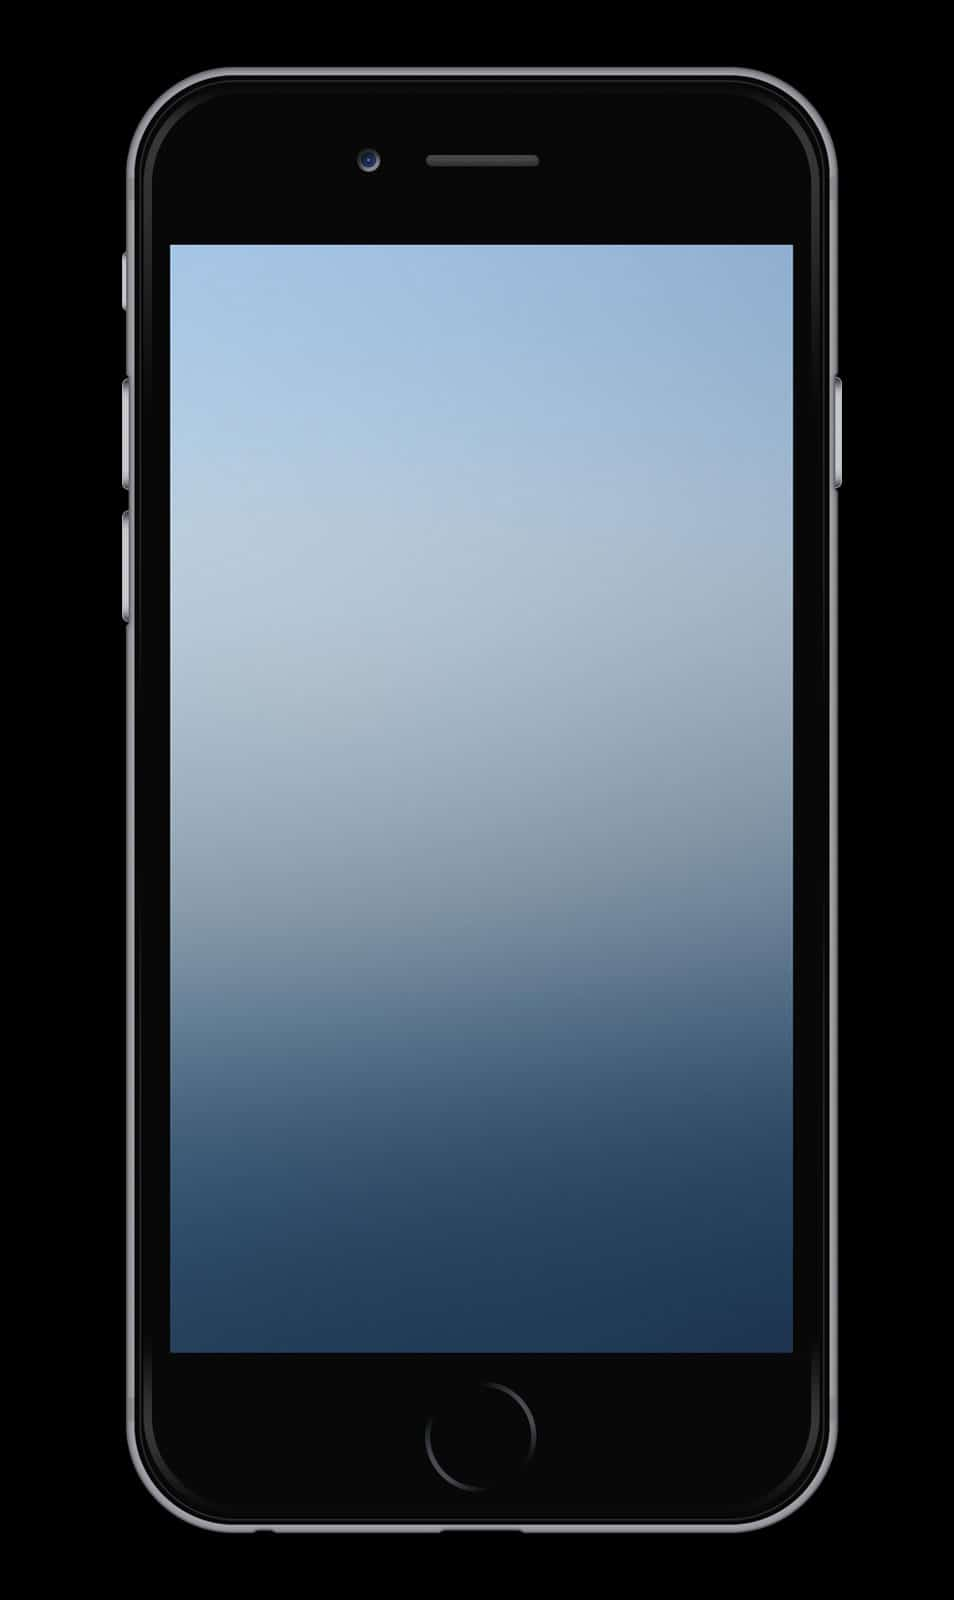 iPhone 6 Template